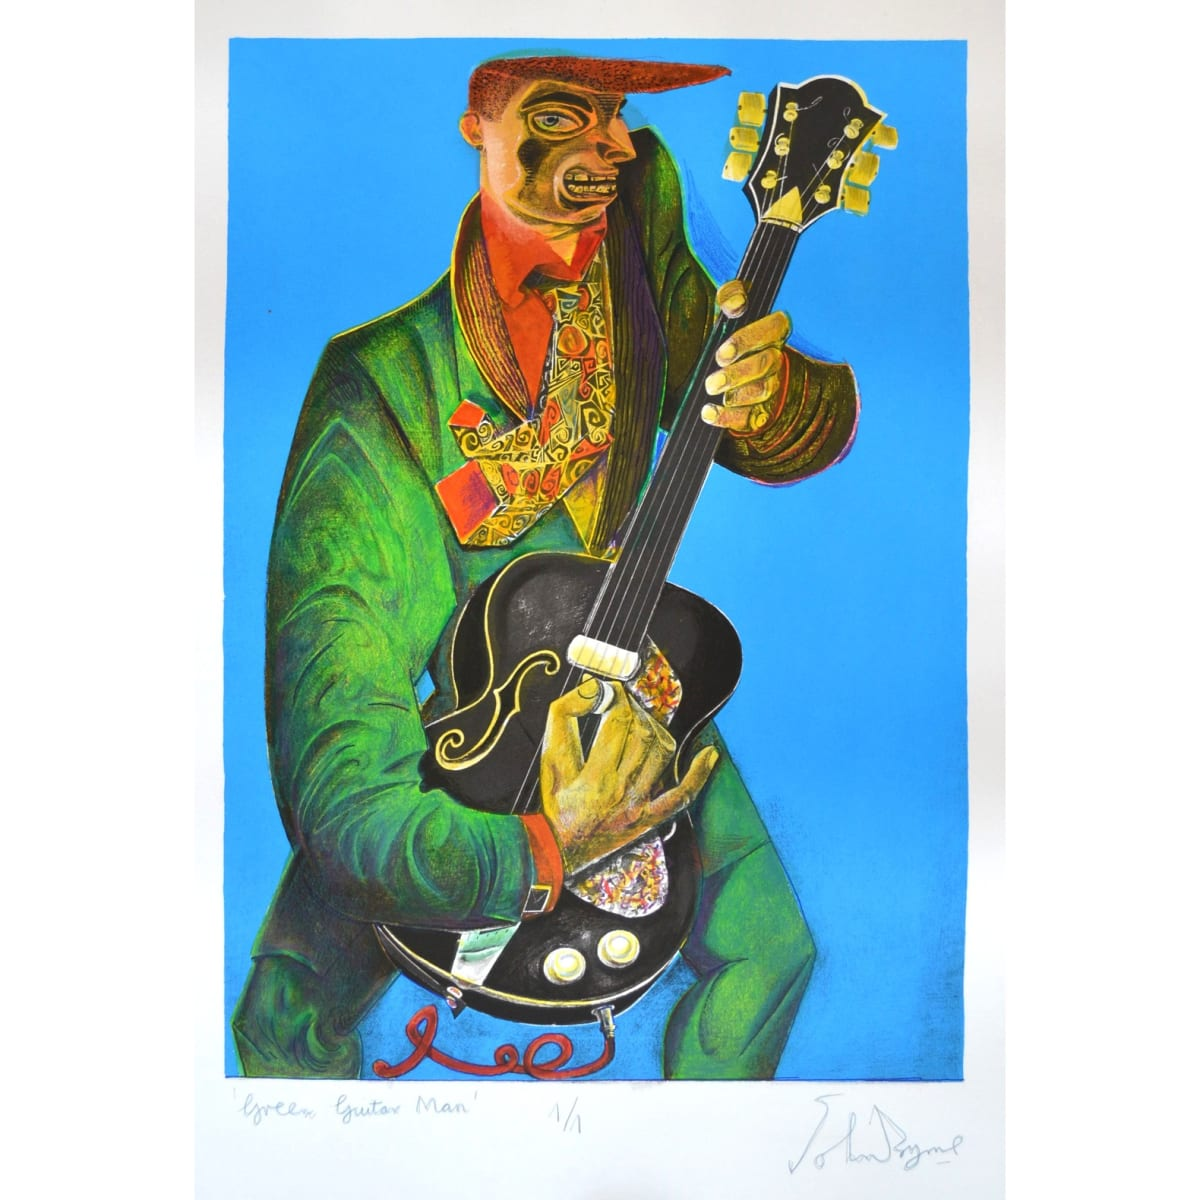 John Byrne Green Guitar Man, 2019 signed, titled and numbered 1/1 in pencil to margin hand coloured lithograph 26 3/4 x 18 3/4 inches